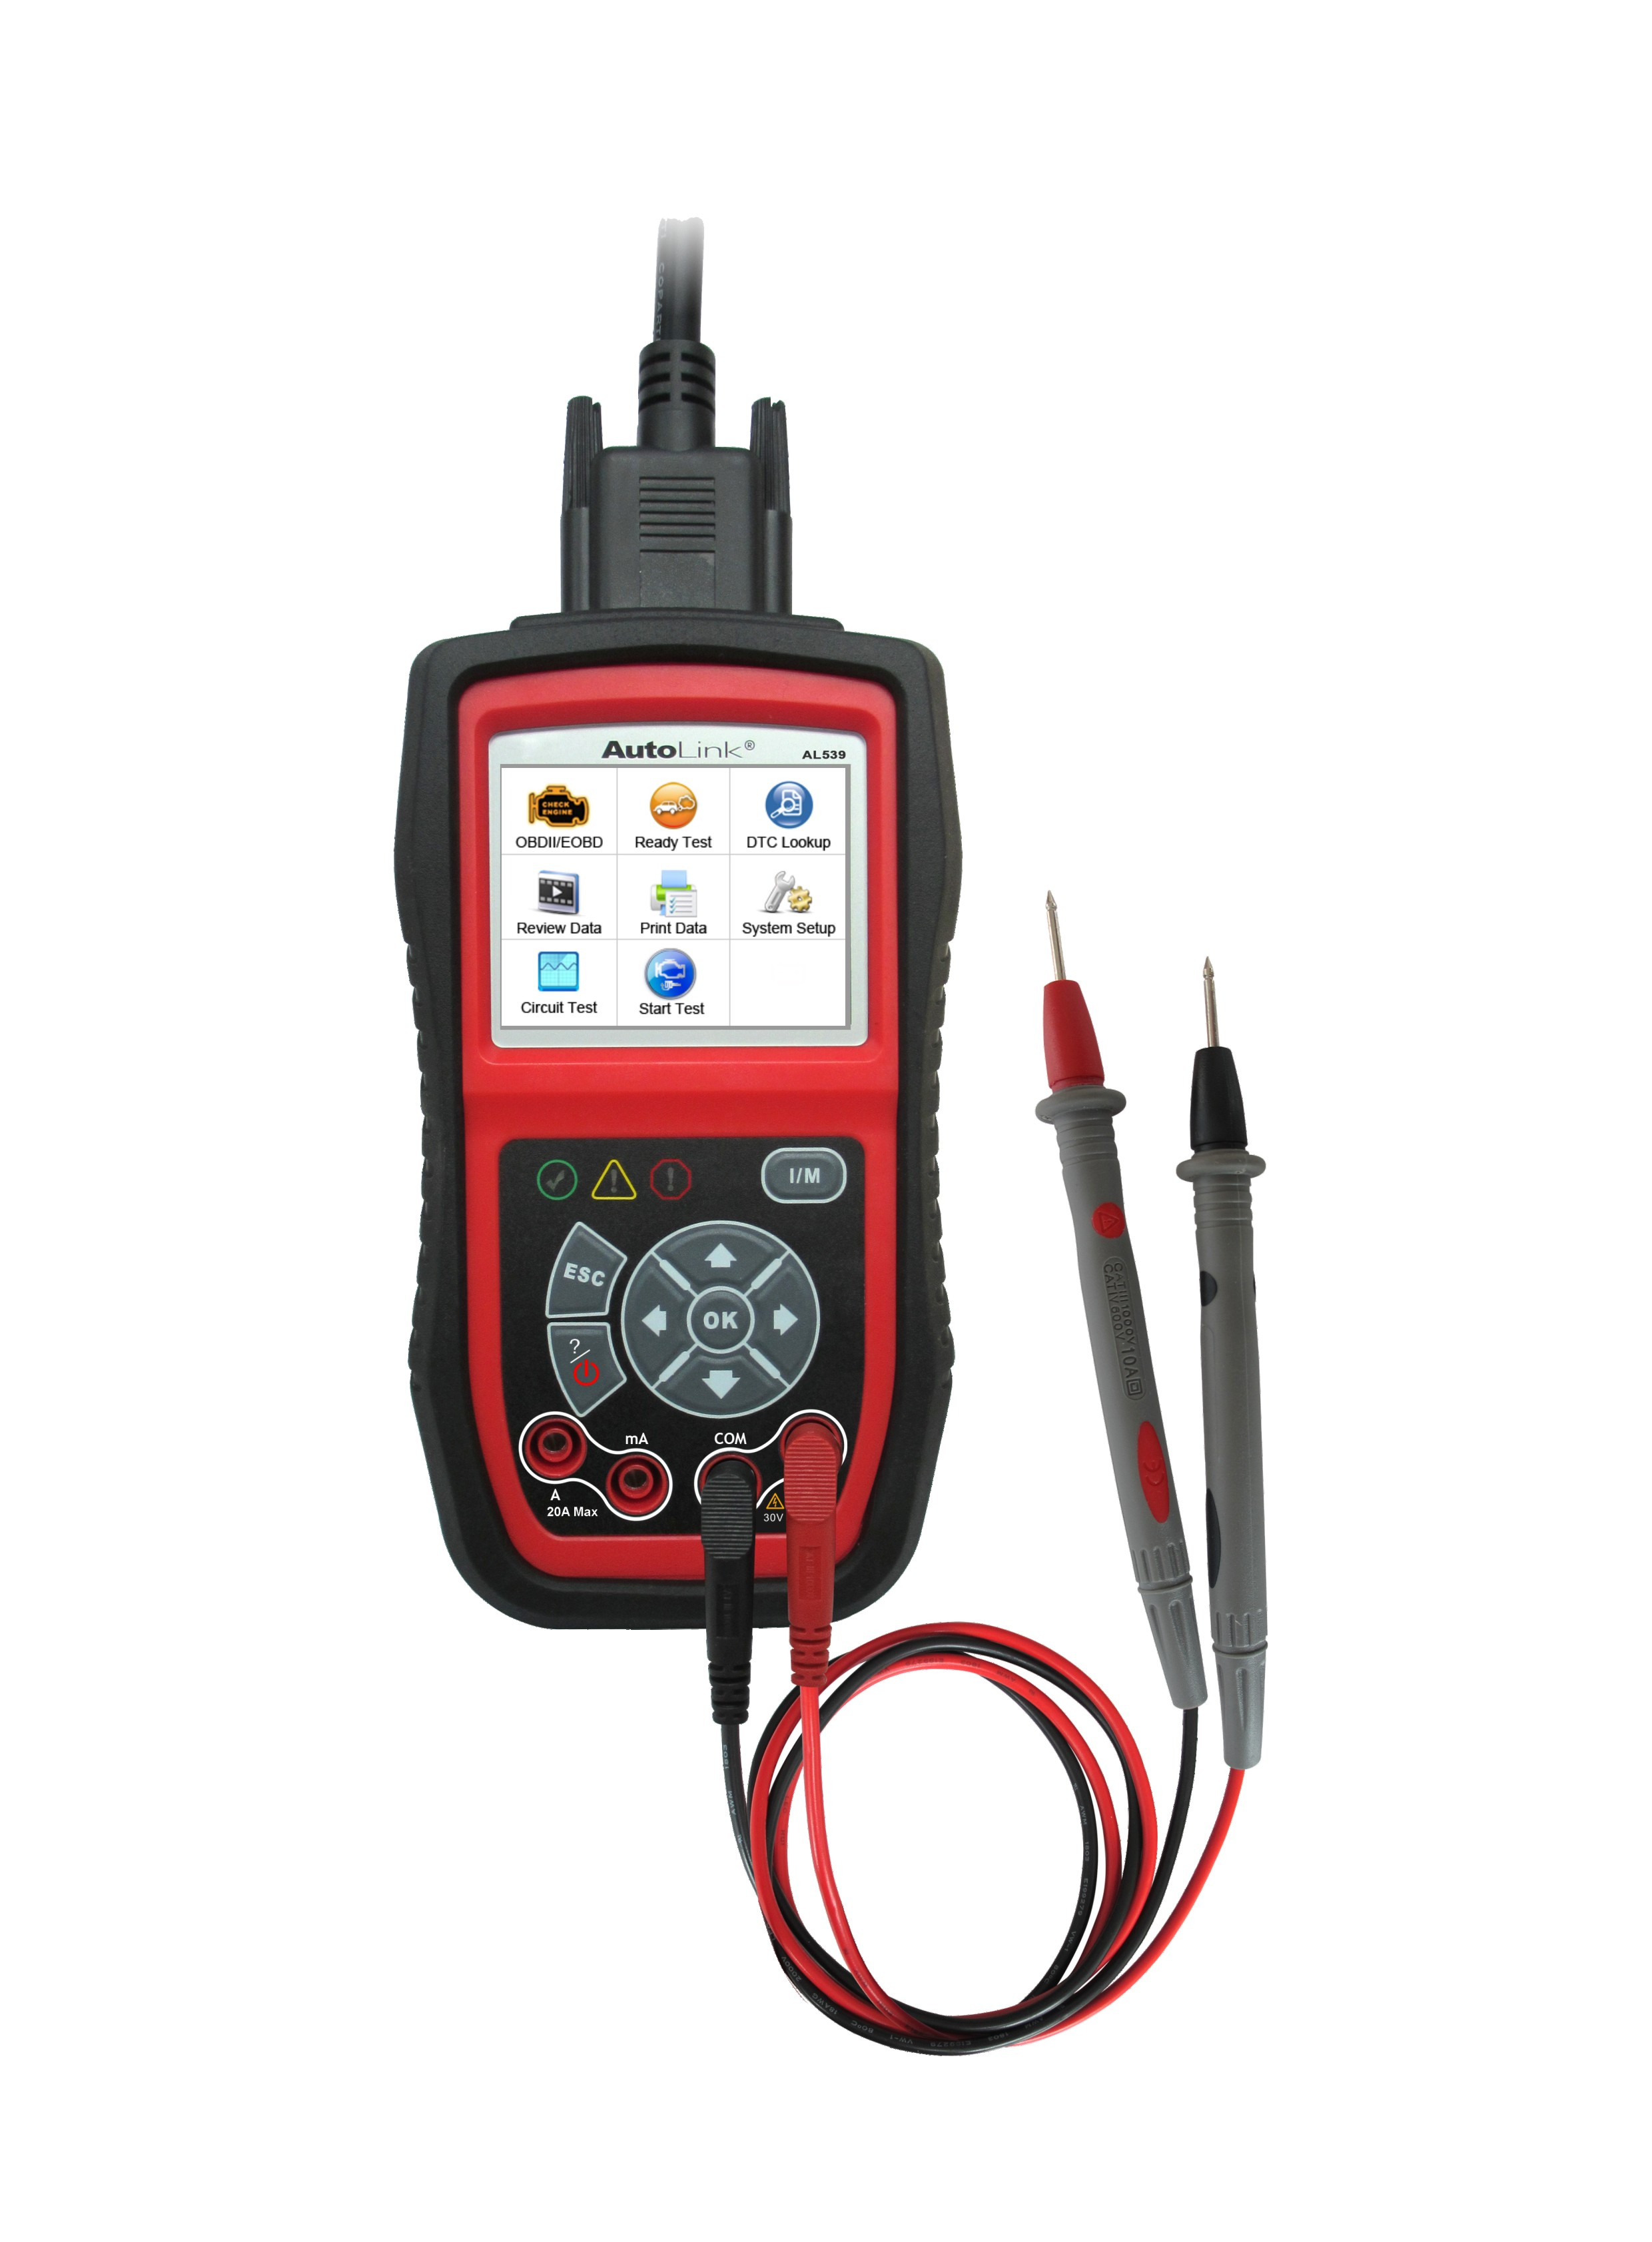 Software Update Pack Autel Intelligent Technology Corp Ltd Scan Tool Obd2 Wiring Diagram